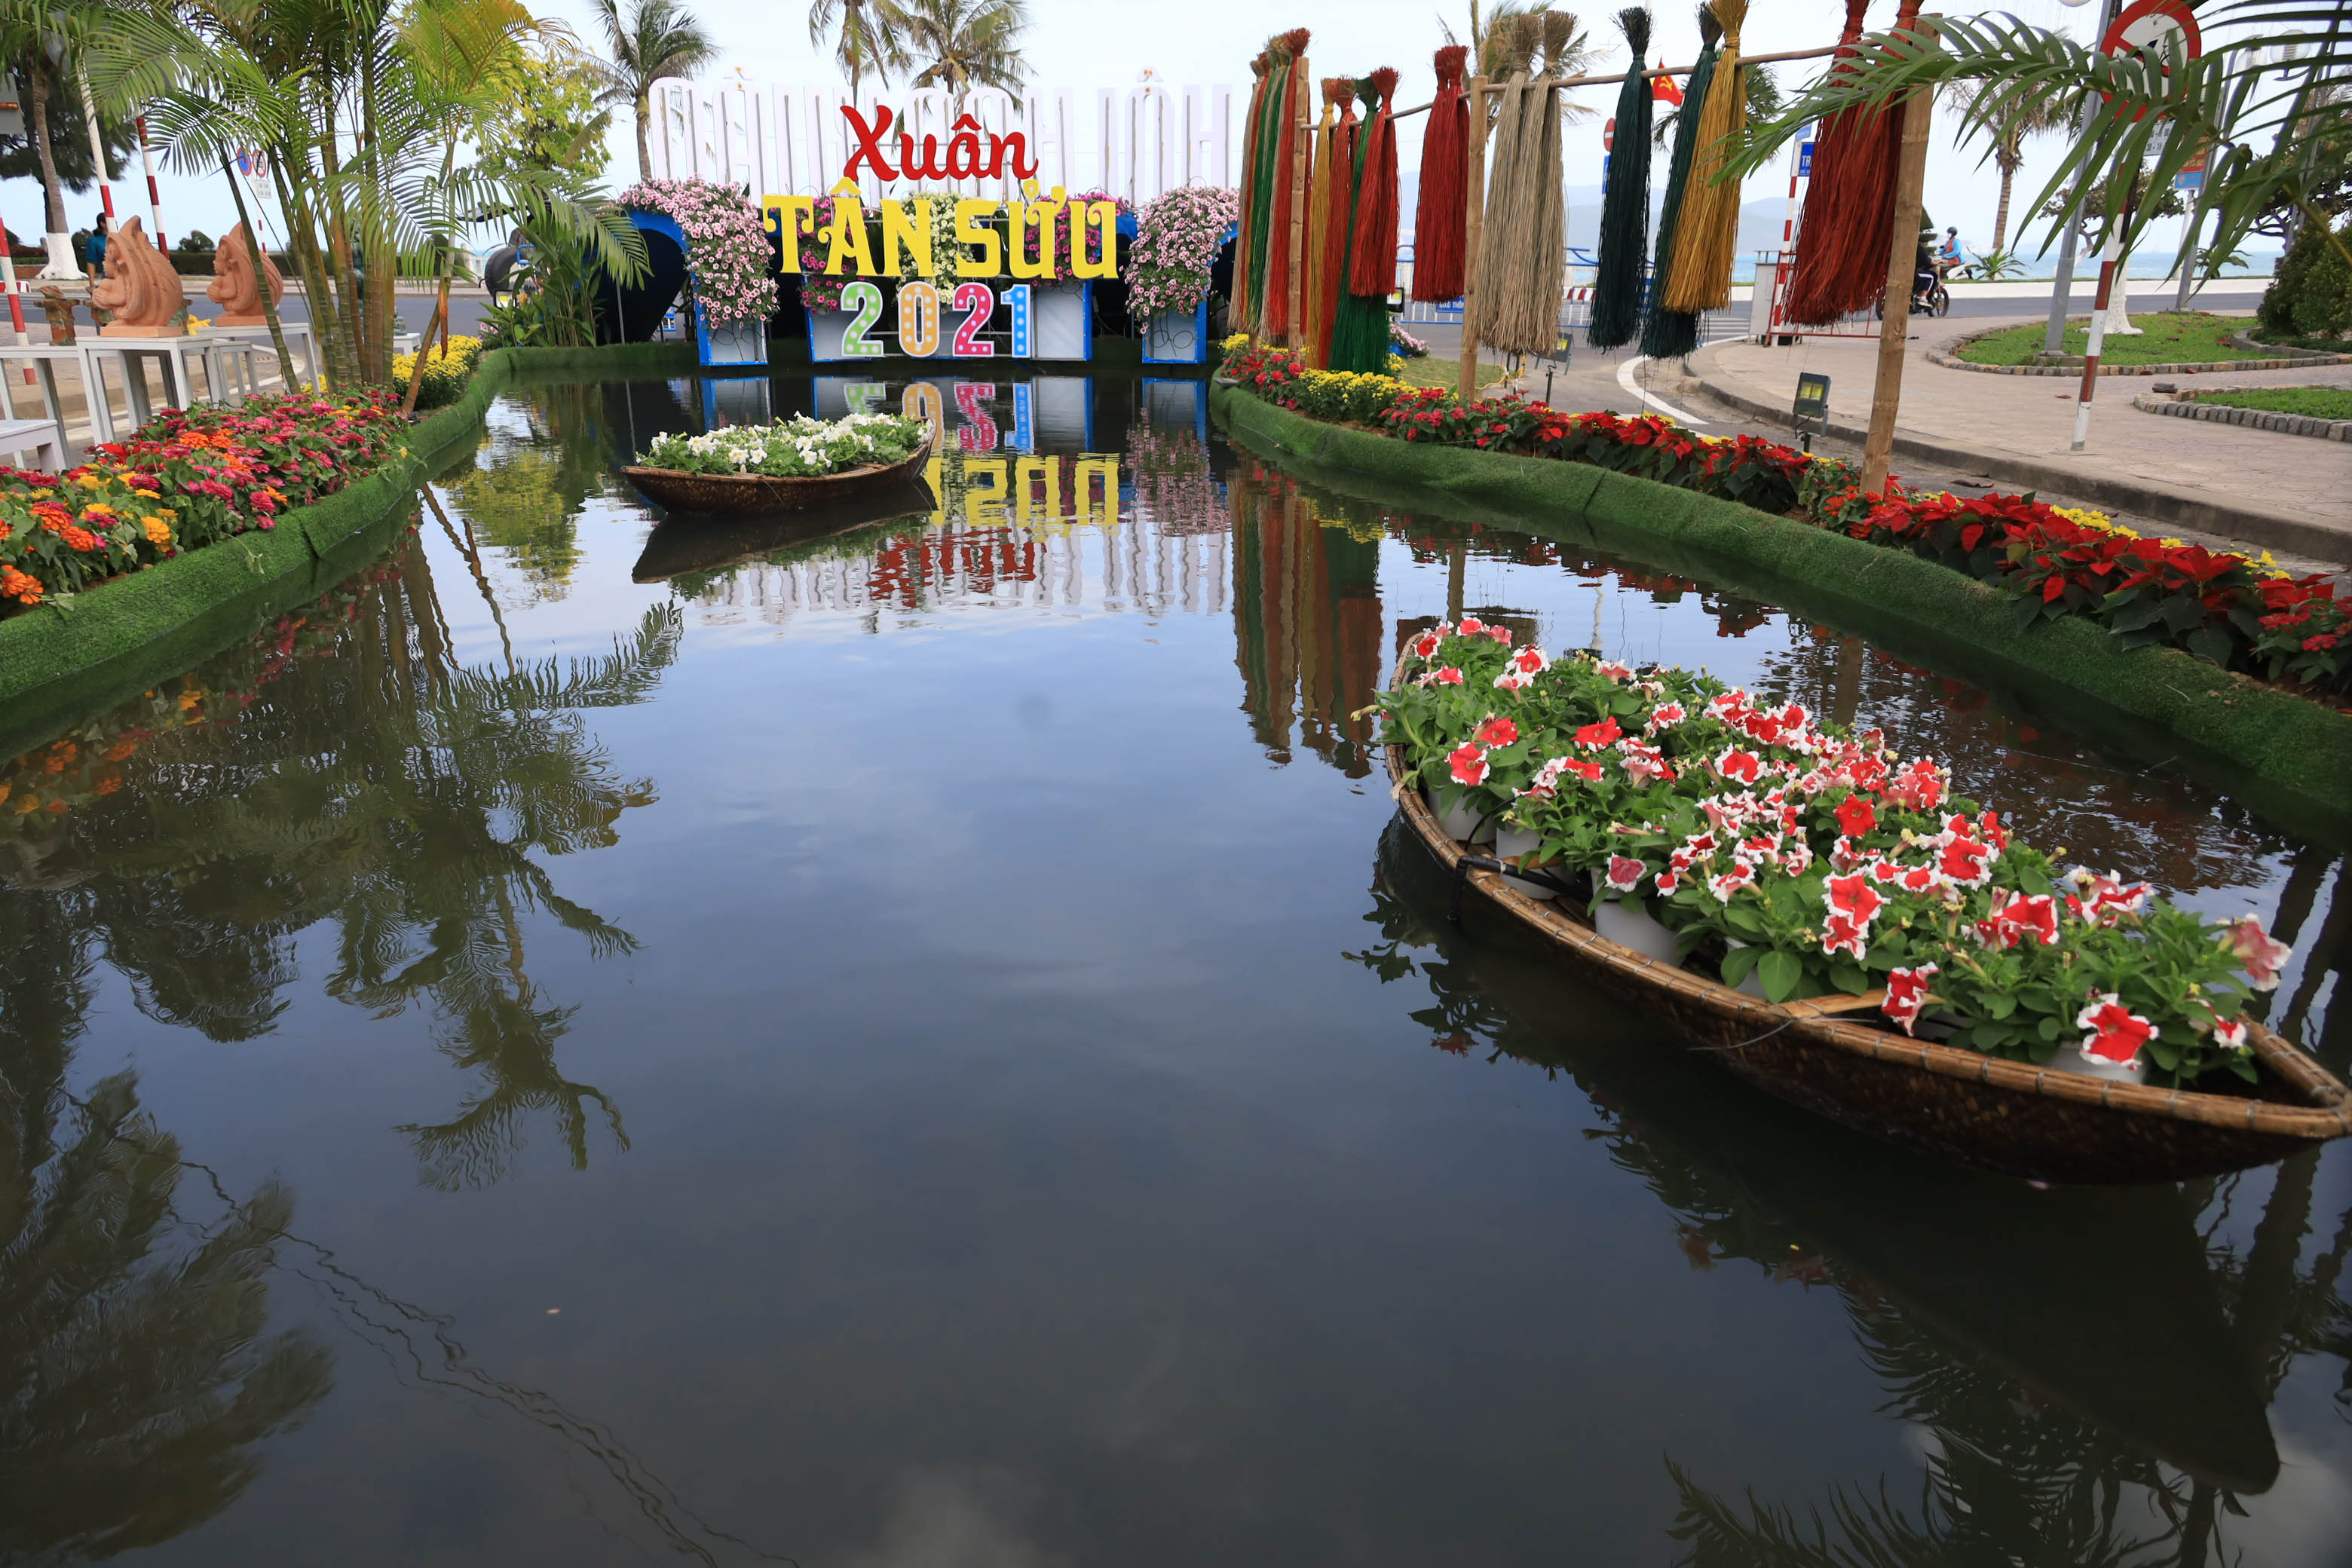 Themed decoration portraying Cai River